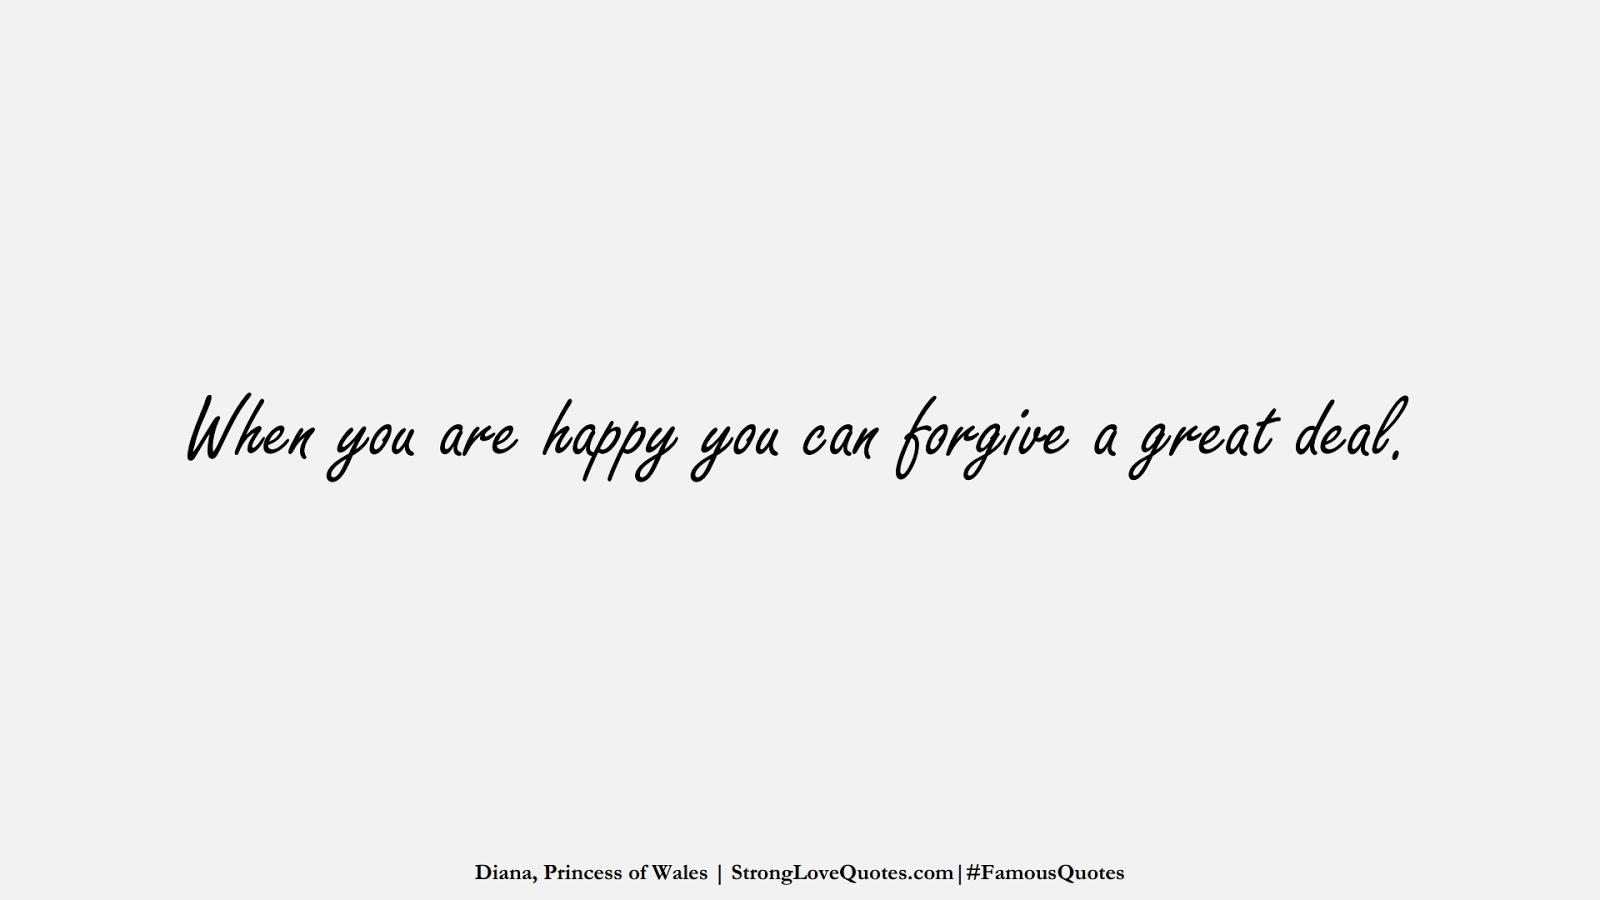 When you are happy you can forgive a great deal. (Diana, Princess of Wales);  #FamousQuotes